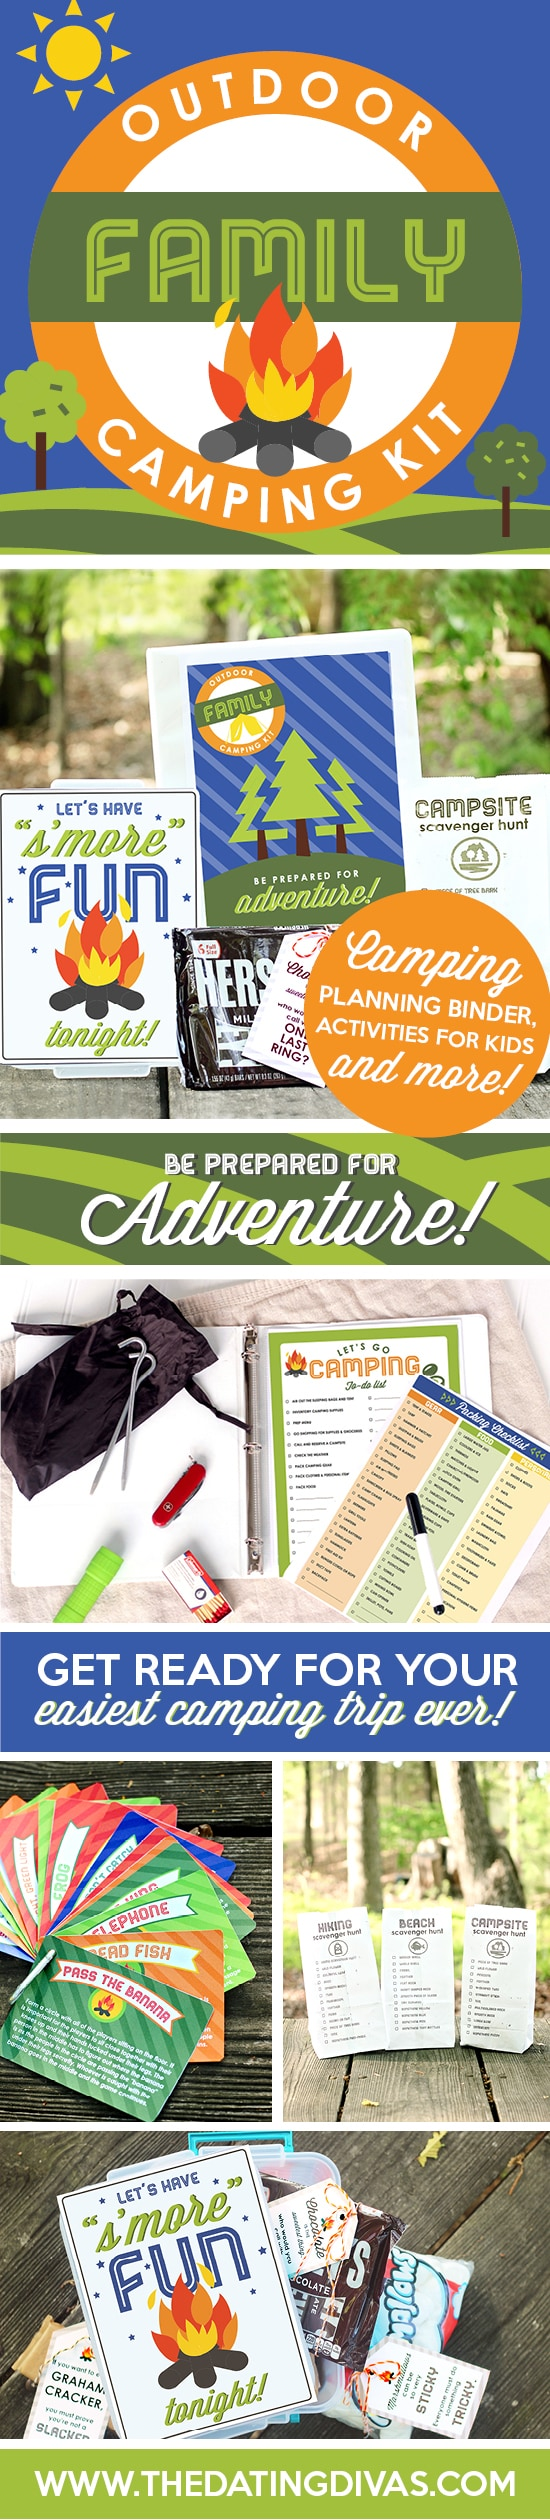 In LOVE with this family camping trip kit! Makes it so easy to stay organized and take advantage of all the perks of camping with your kids! #TheDatingDivas #CampingTrip #Camping